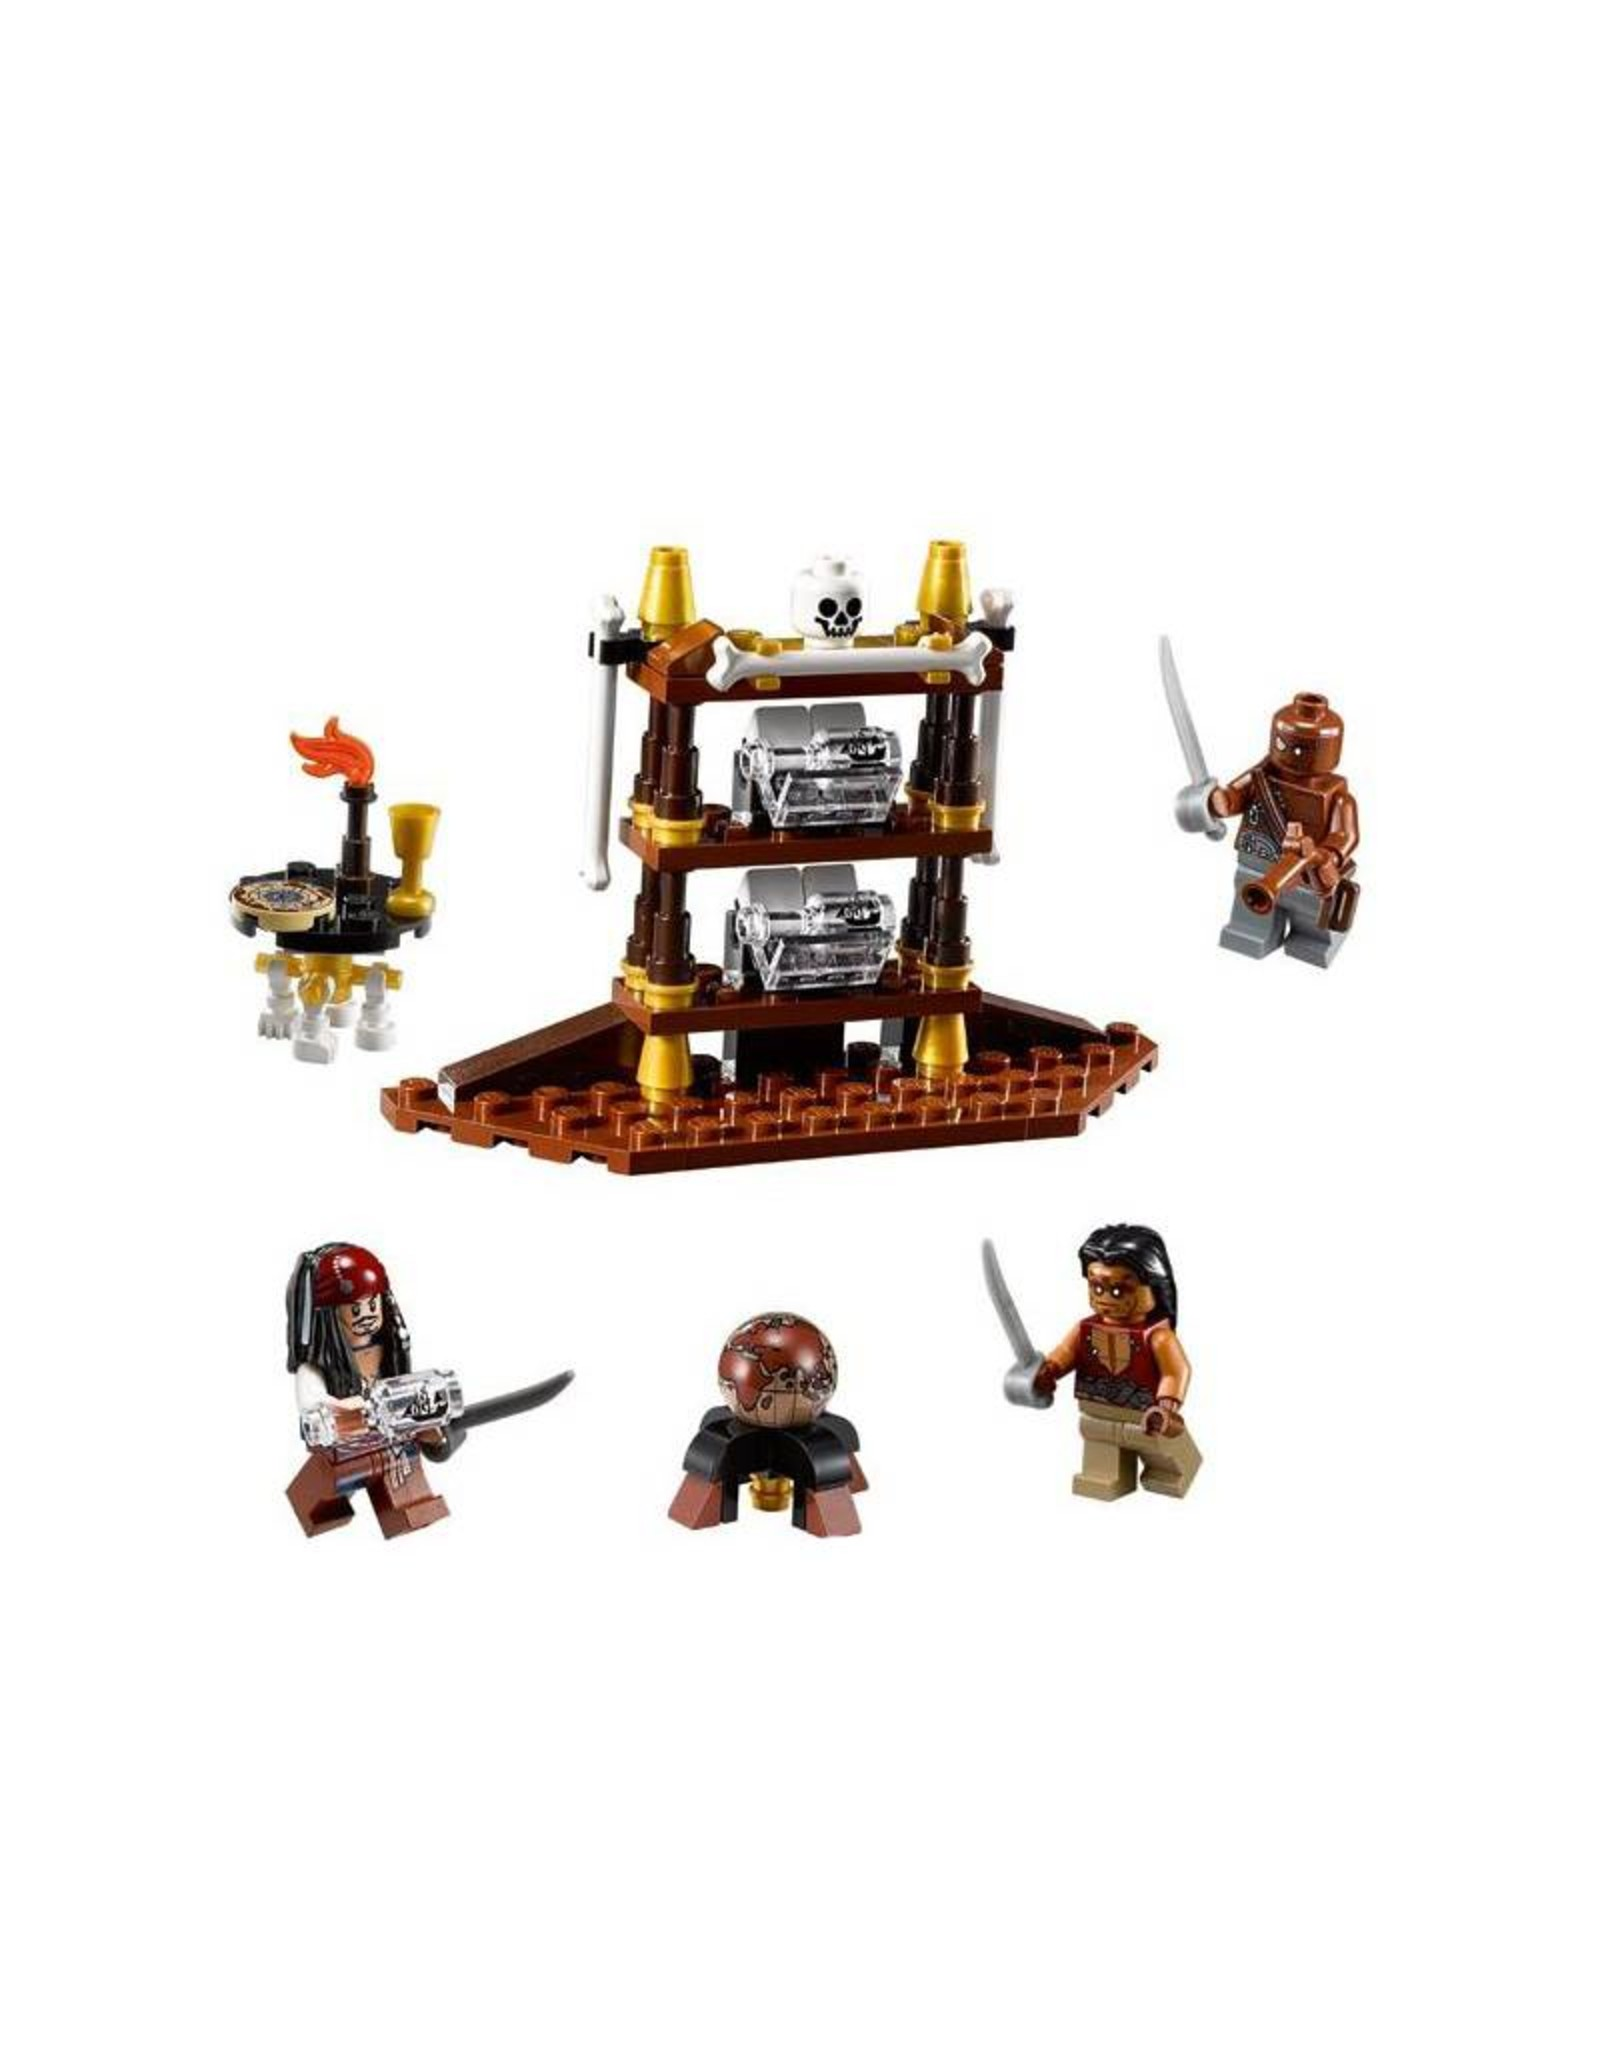 LEGO LEGO 4191 The Captain's Cabin PIRATES OF THE CARIBBEAN